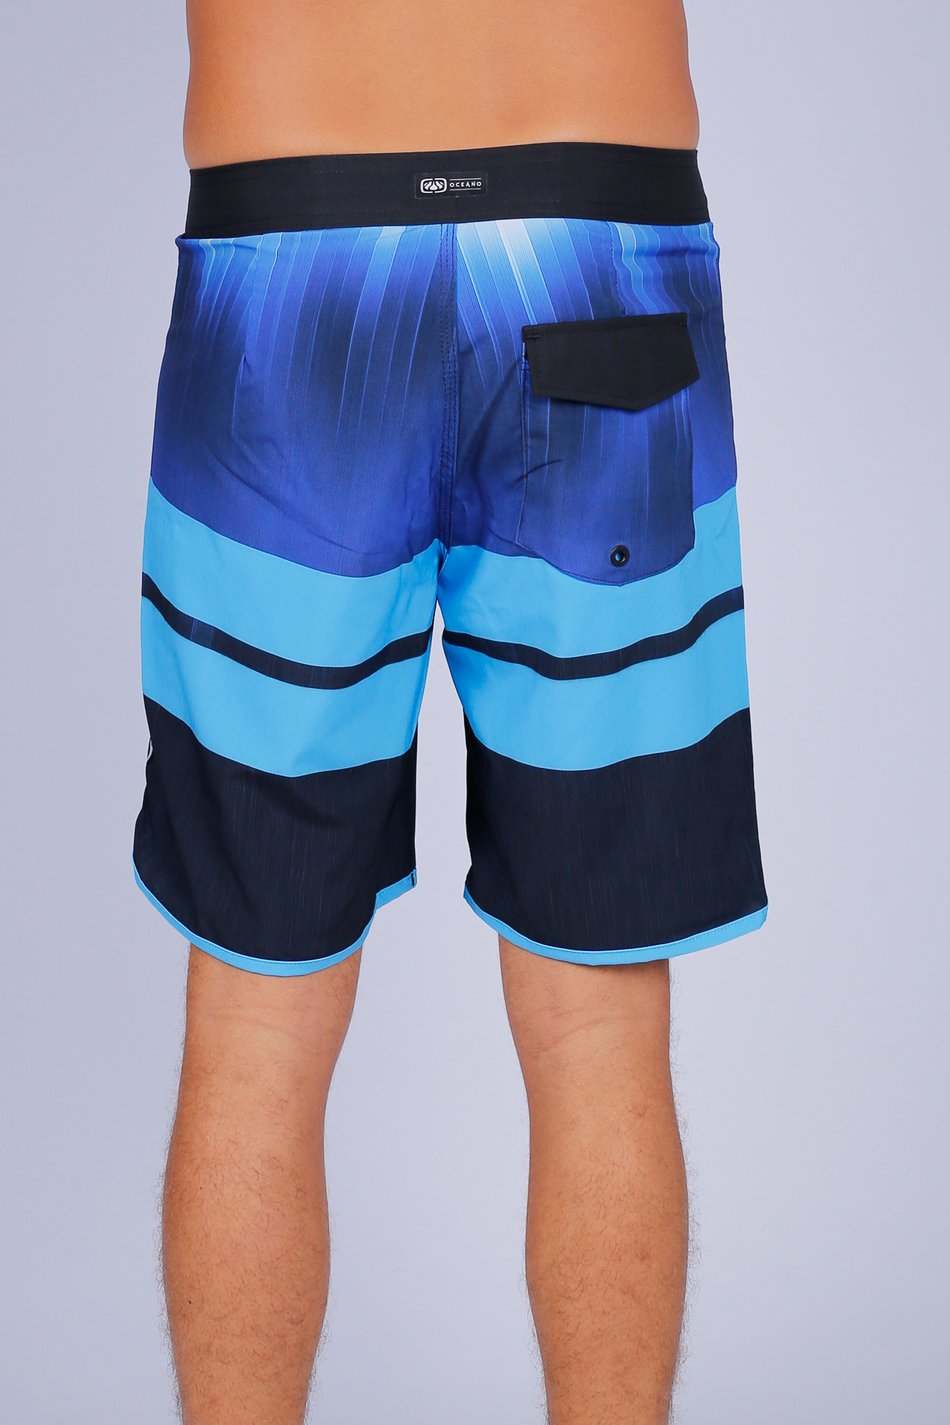 BERMUDA BOARDSHORT OCEANO DUO LISTRAS PERFORMANCE STRETCH